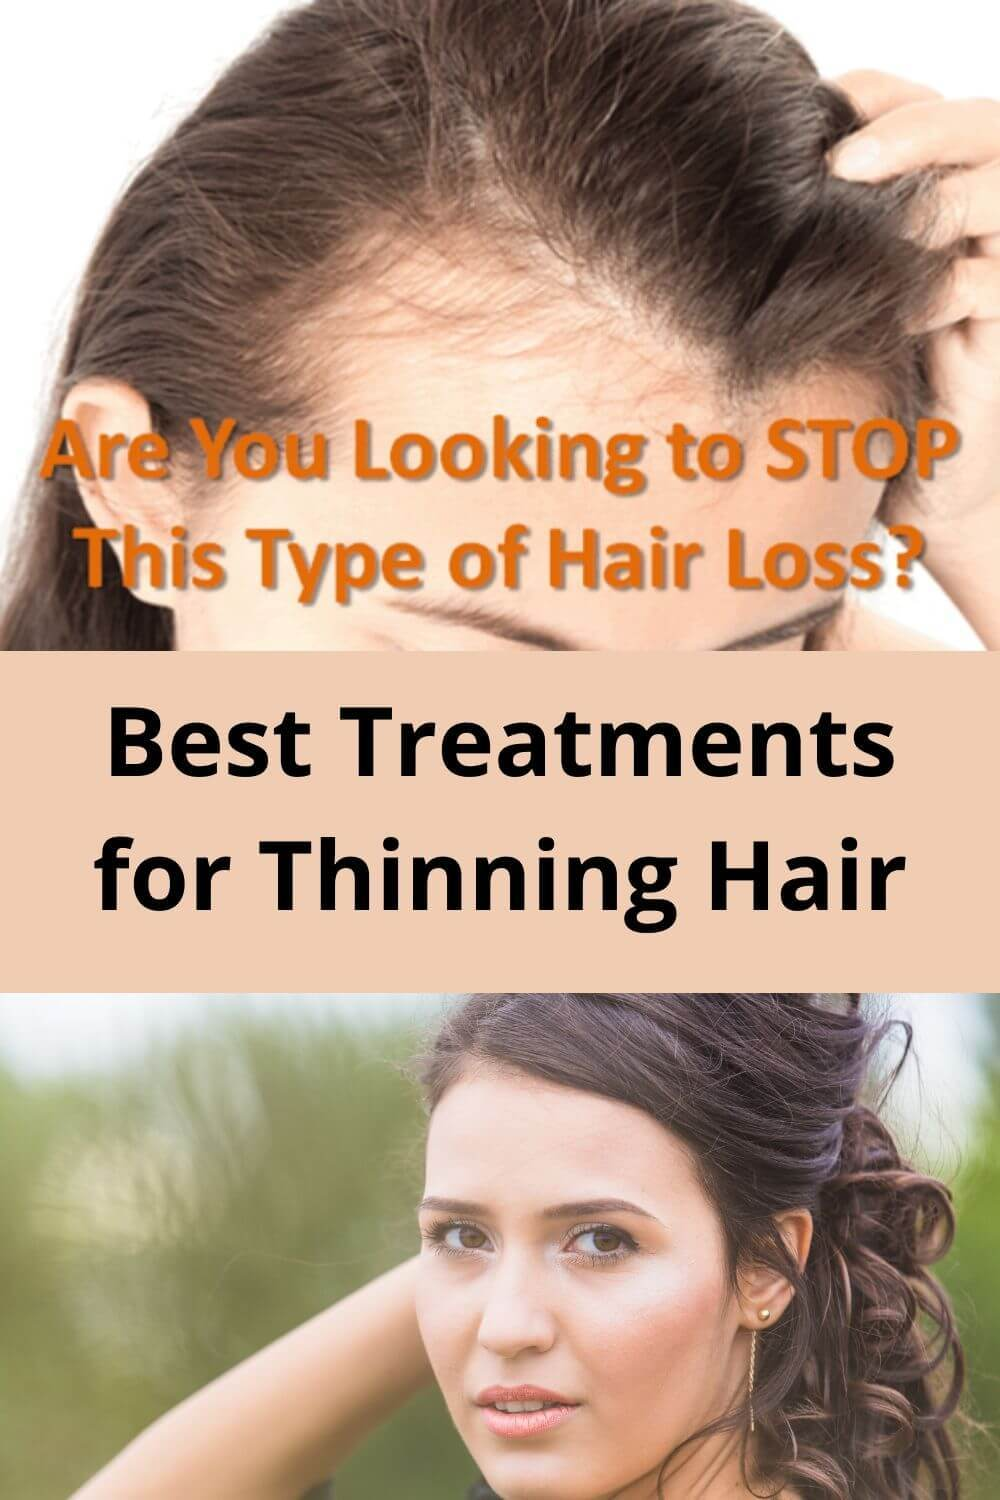 Best treatments for thinning hair